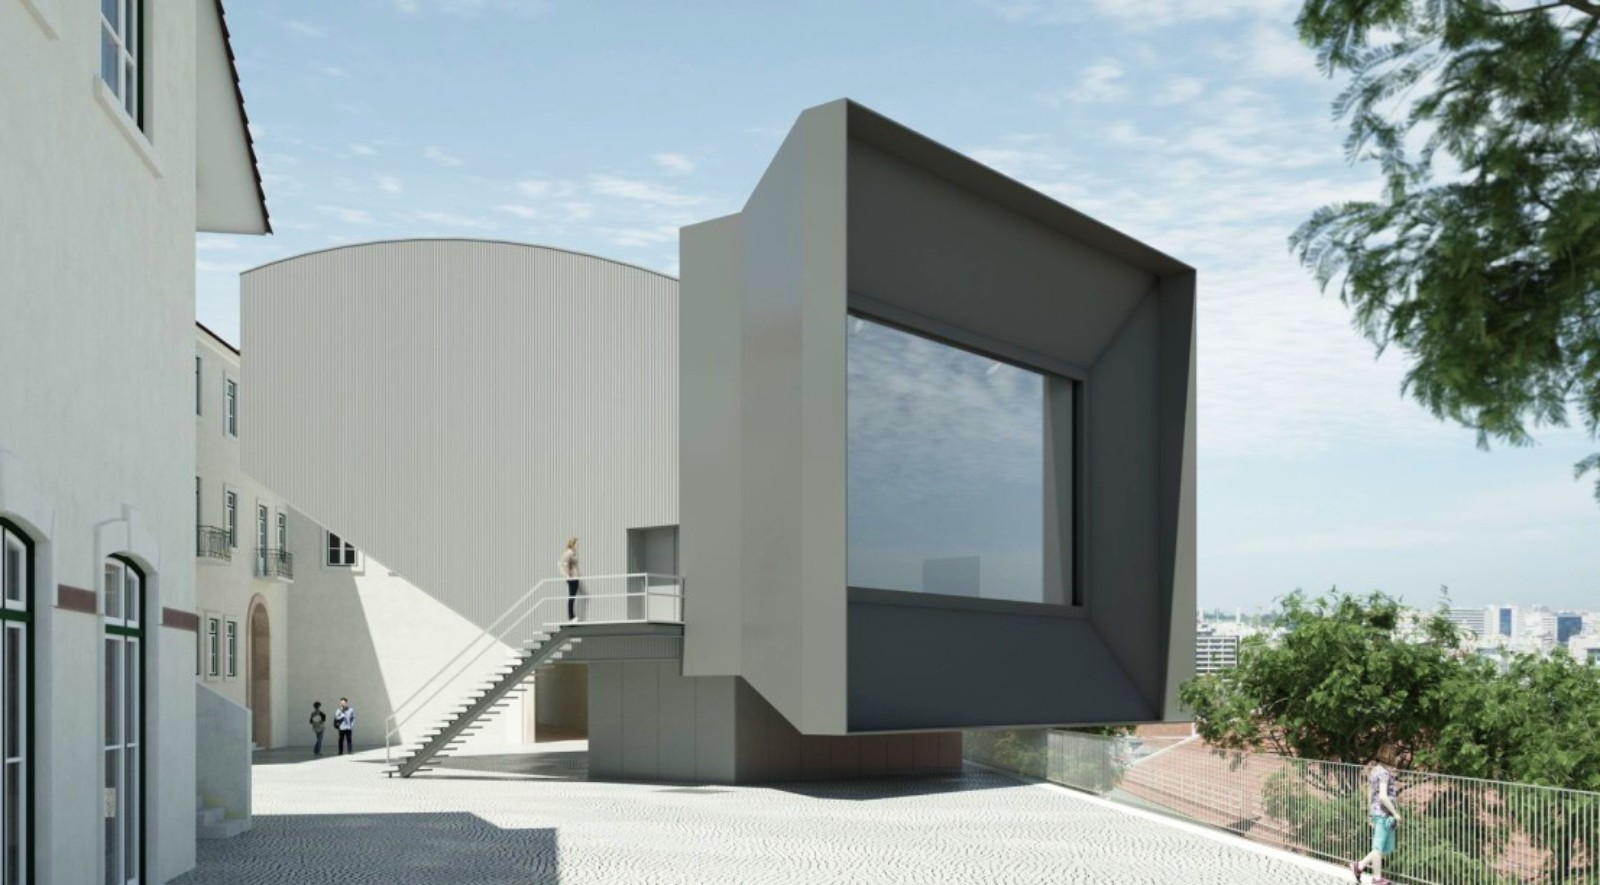 New auditorium of santa casa da miseric rdia by eduardo for Da architecture